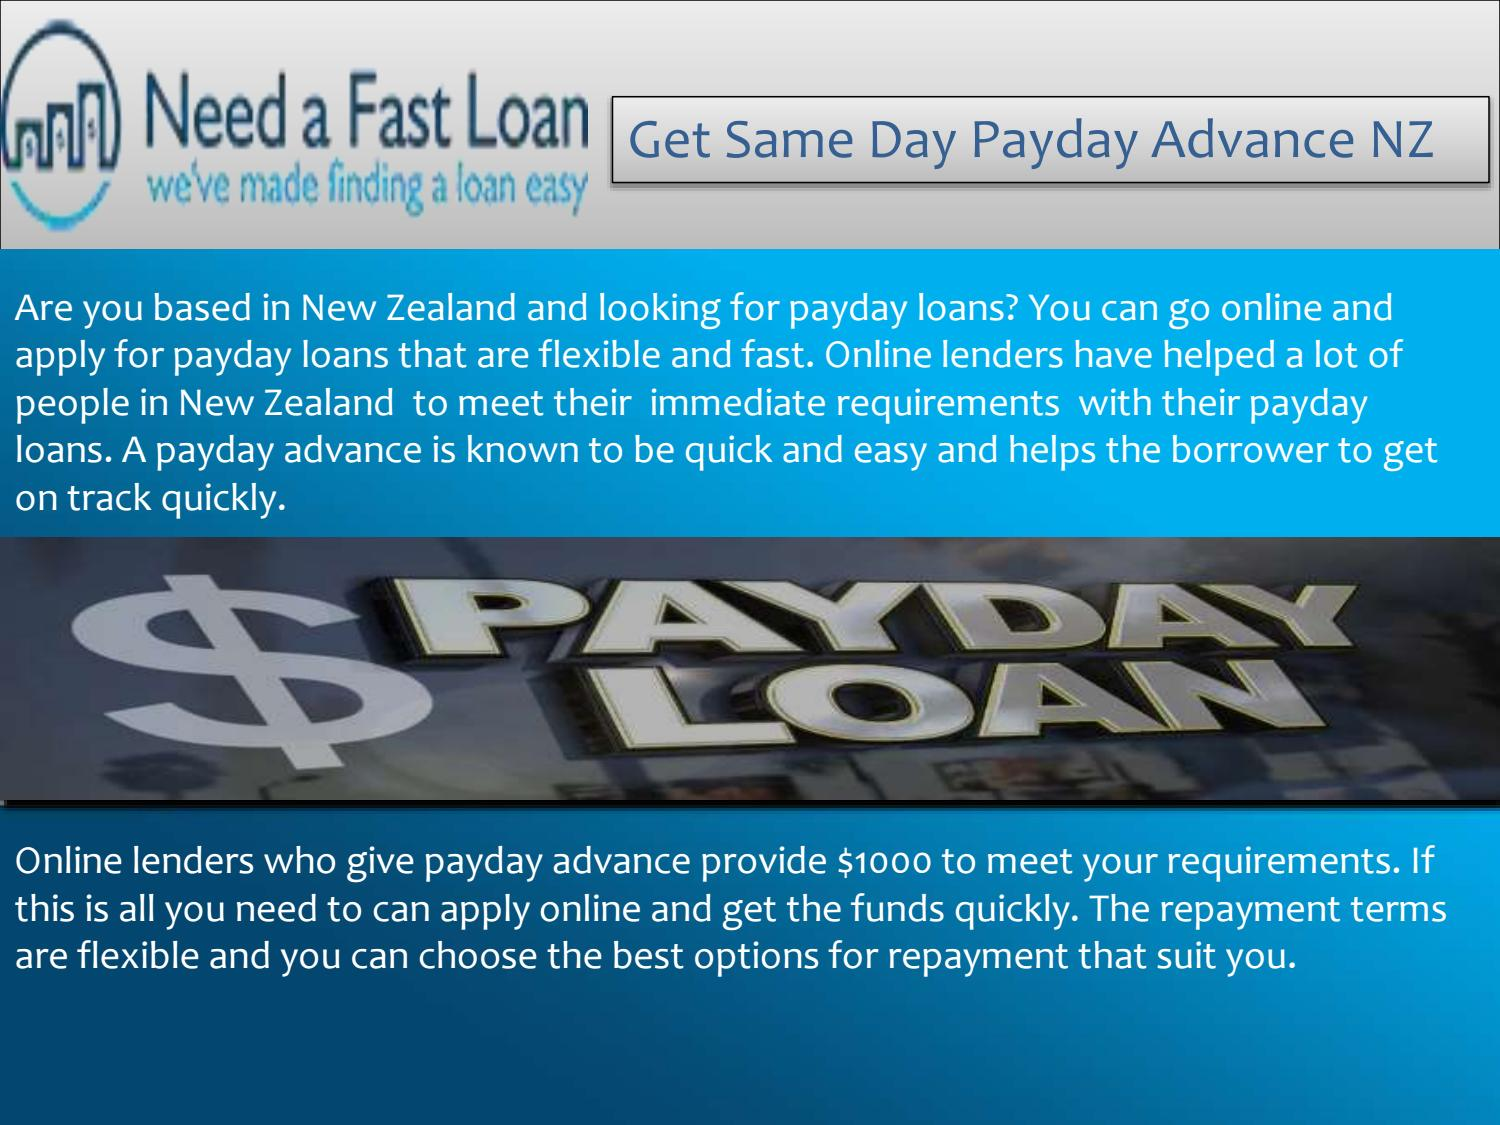 Overnight cash advance loans picture 4